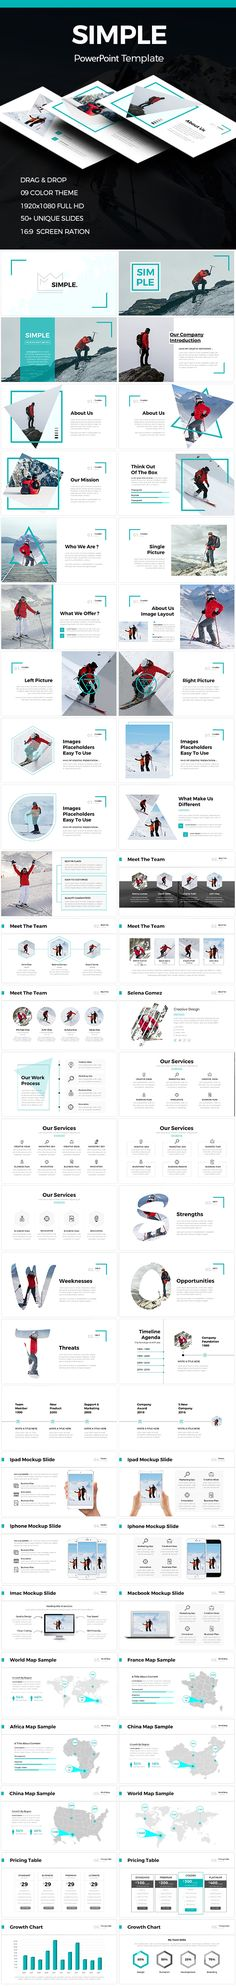 Simple  Clean Powerpoint Template — Powerpoint PPTX #swot analysis #1920x1080 • Download ➝ https://graphicriver.net/item/simple-clean-powerpoint-template/19033170?ref=pxcr